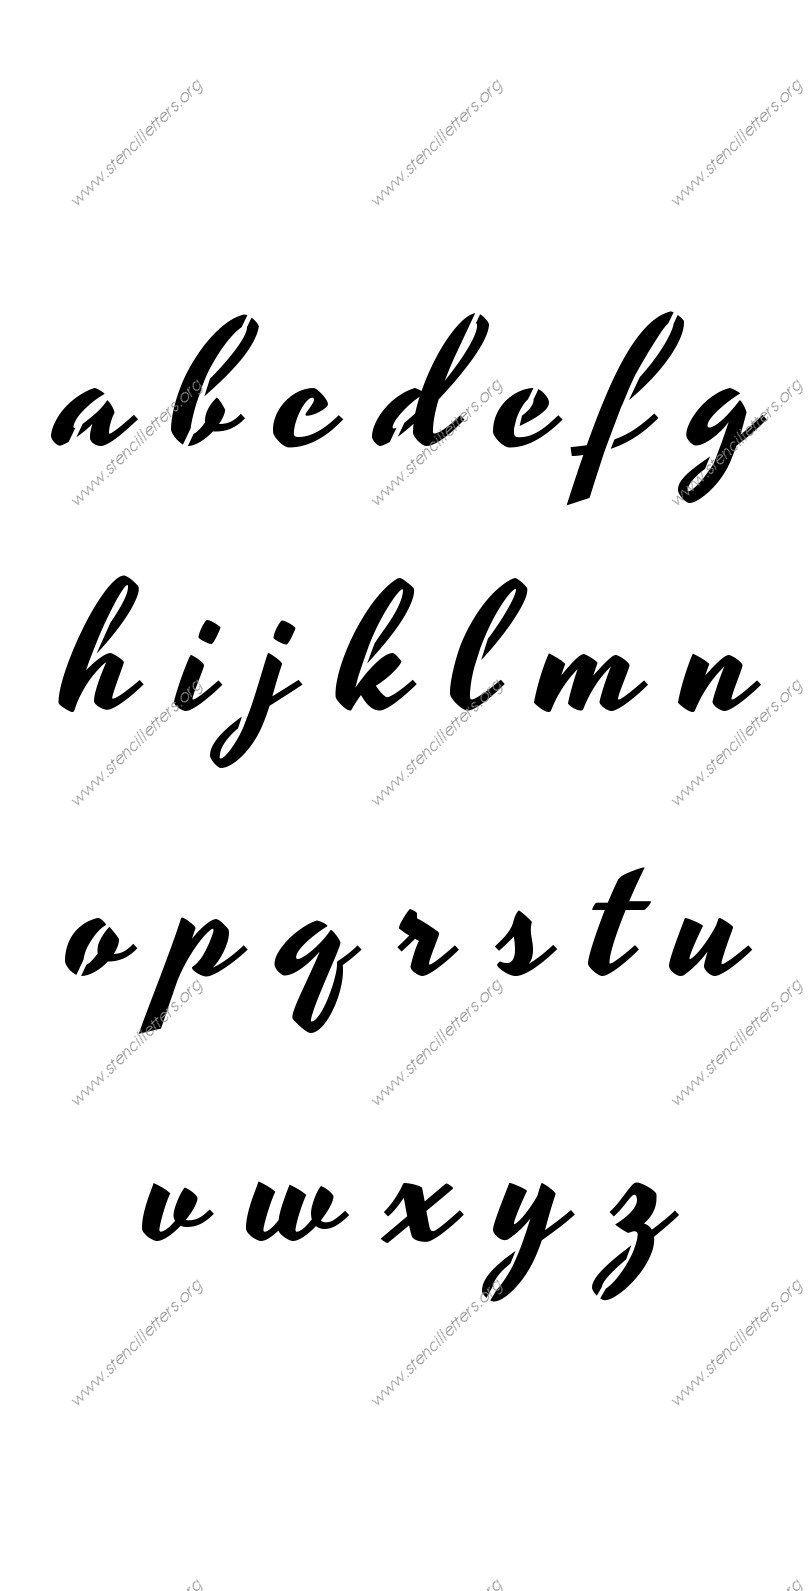 1940s Brushed Cursive A to Z lowercase letter stencils